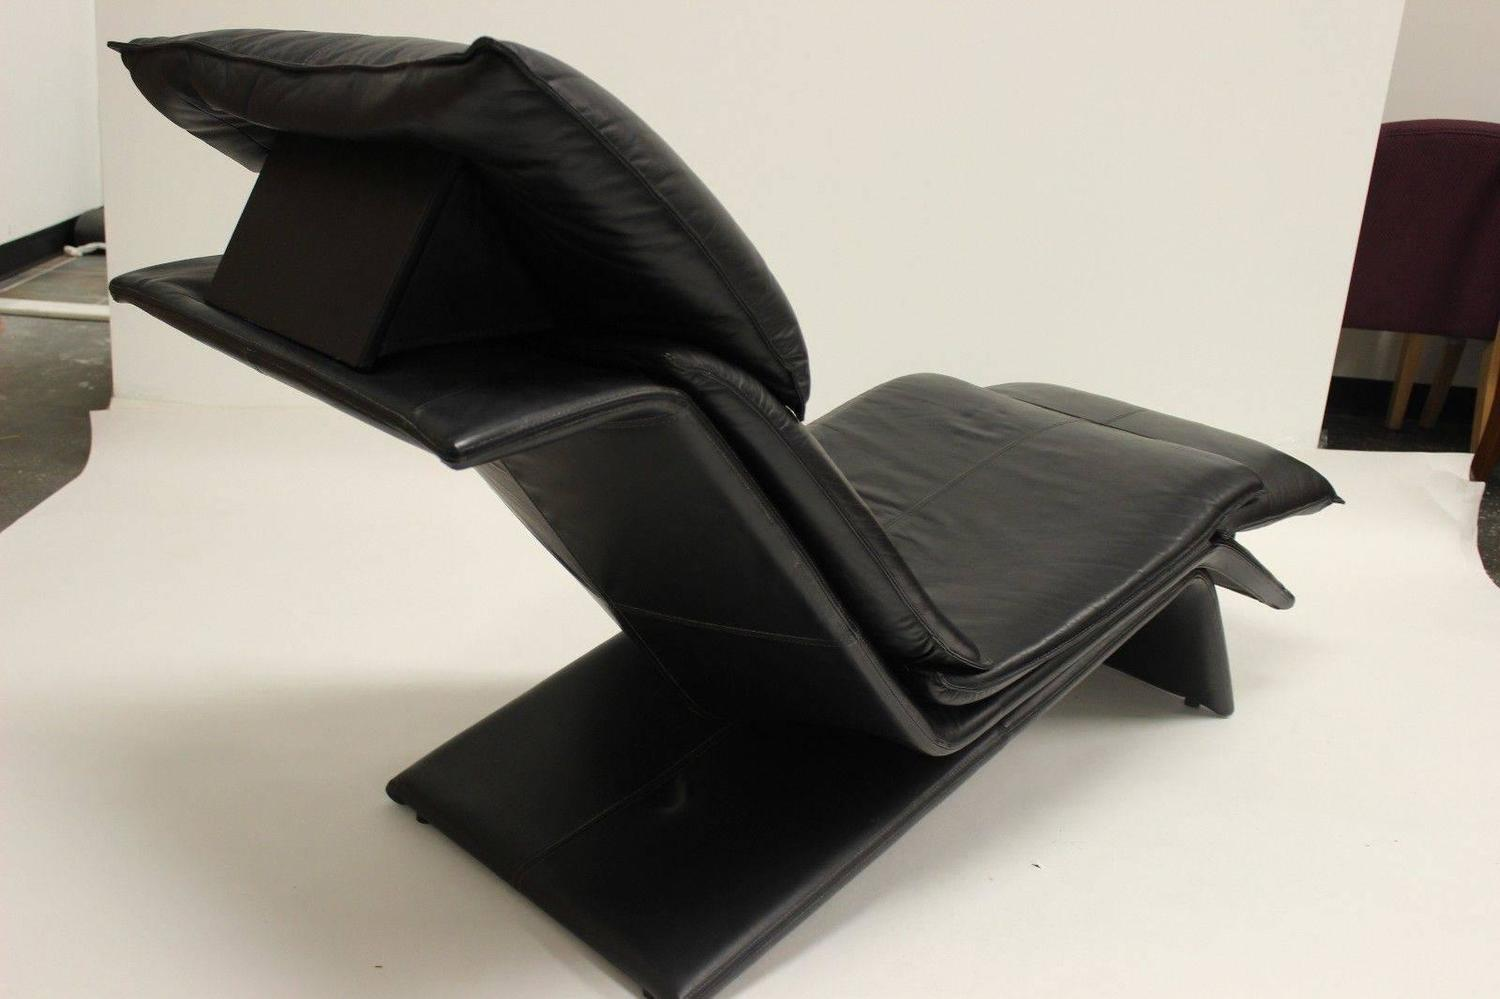 Very Sleek Leather Vico Magistretti Style Lounge Chair At